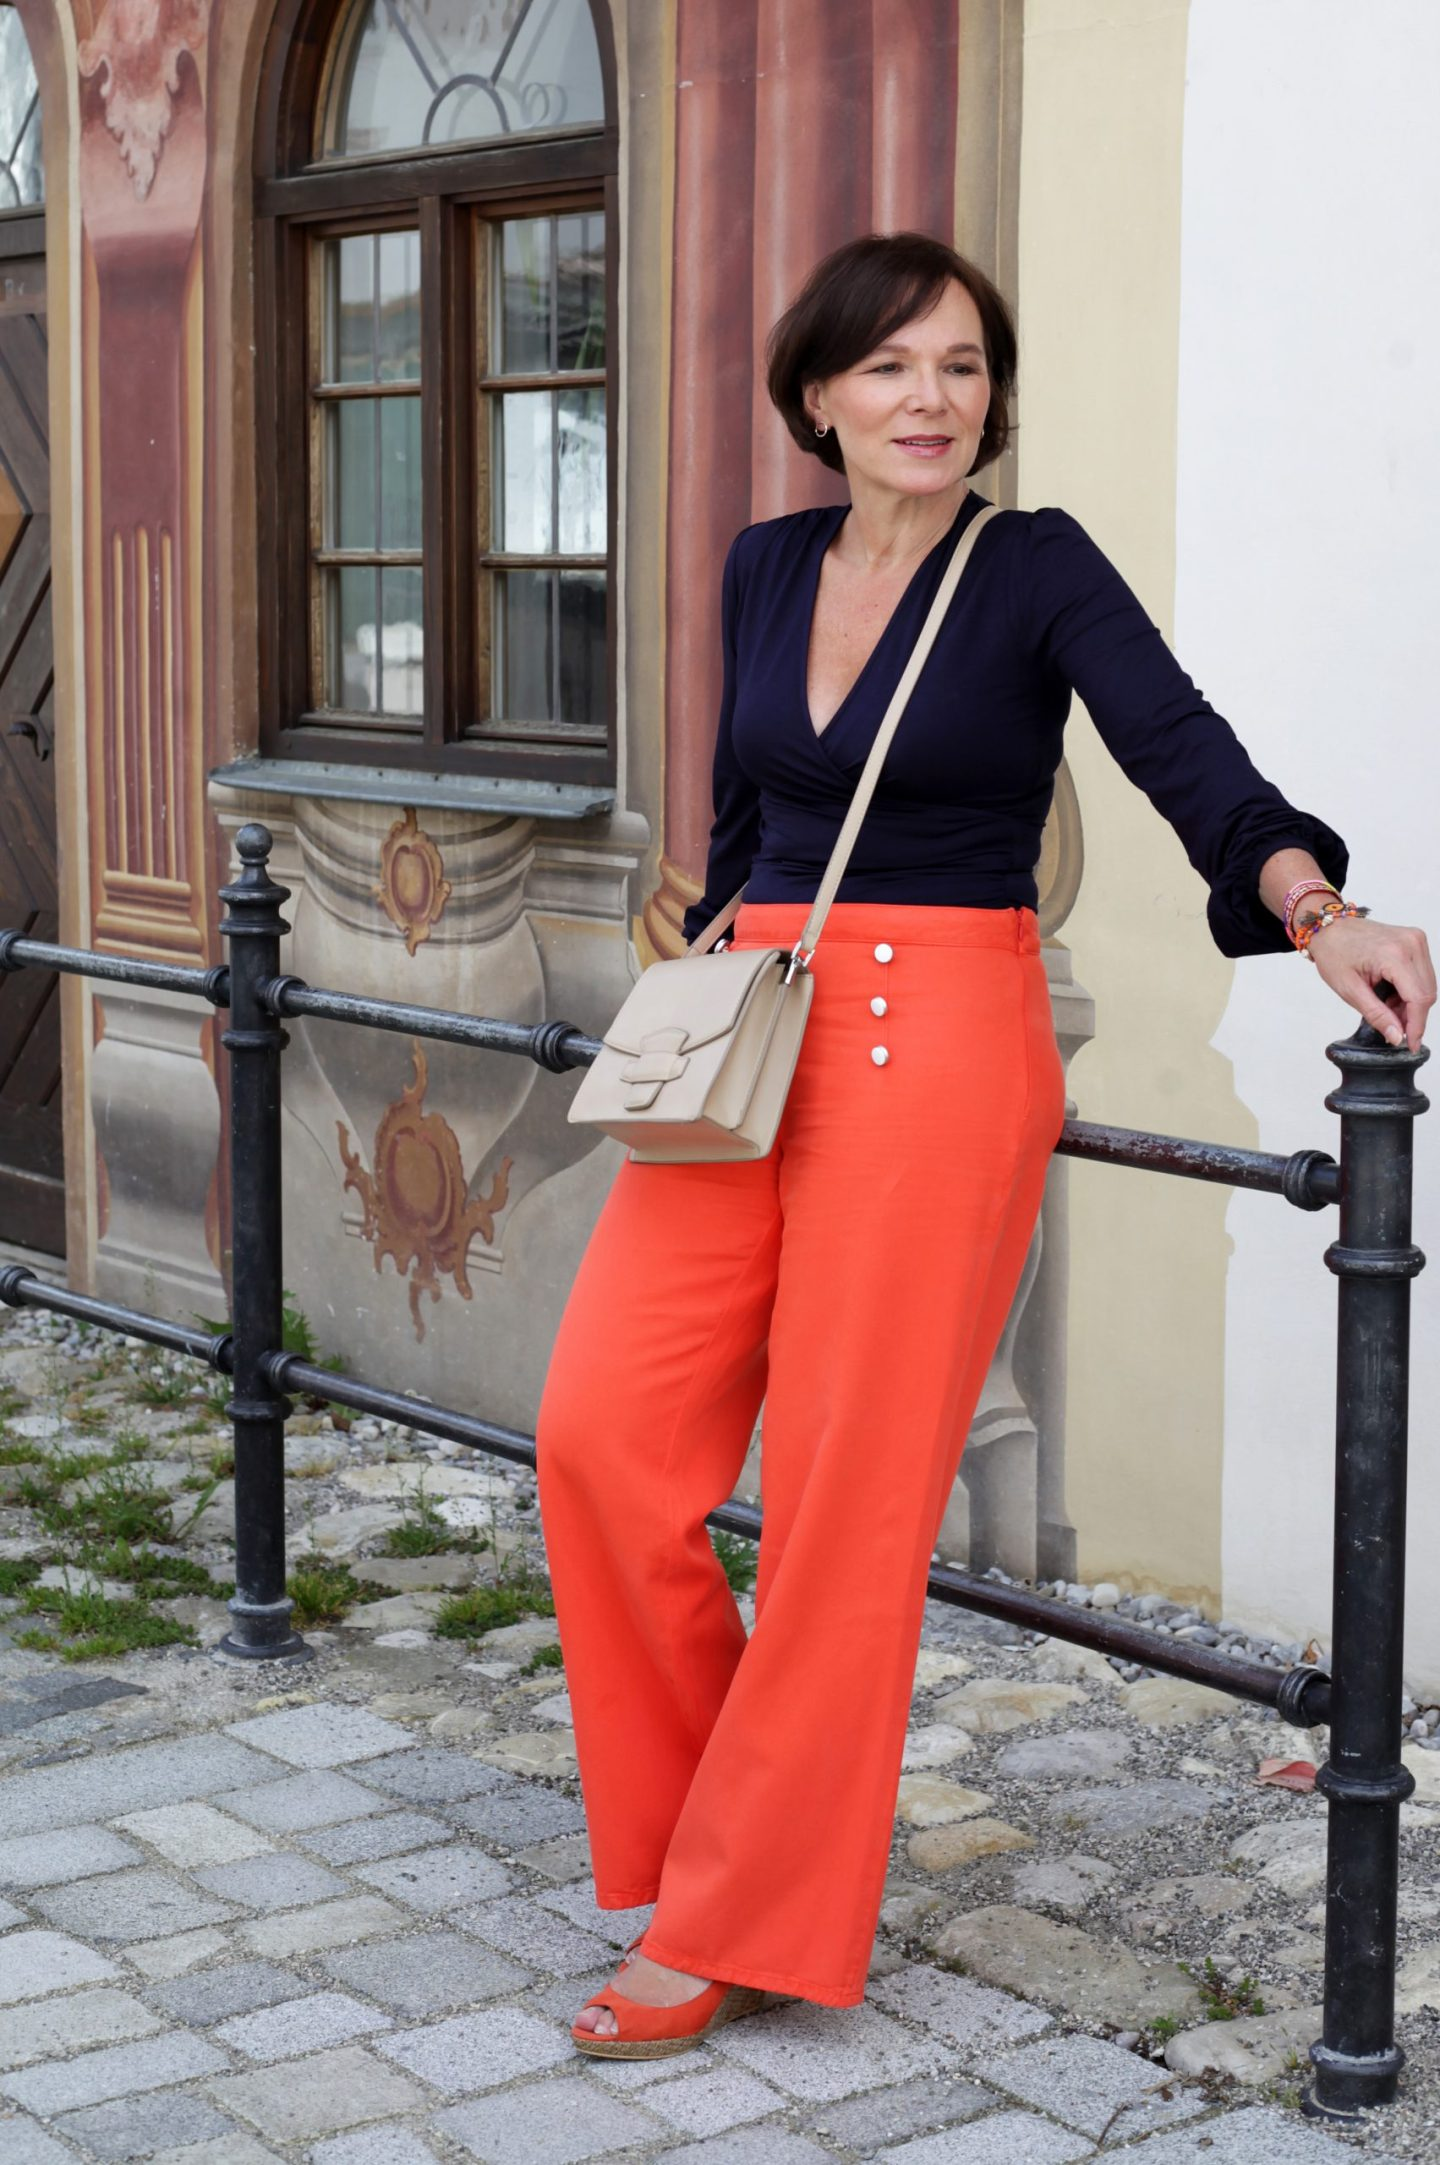 LadyofStyle Boden Sommerlook Sommermode Marlenehose Orange 50plus Blogger